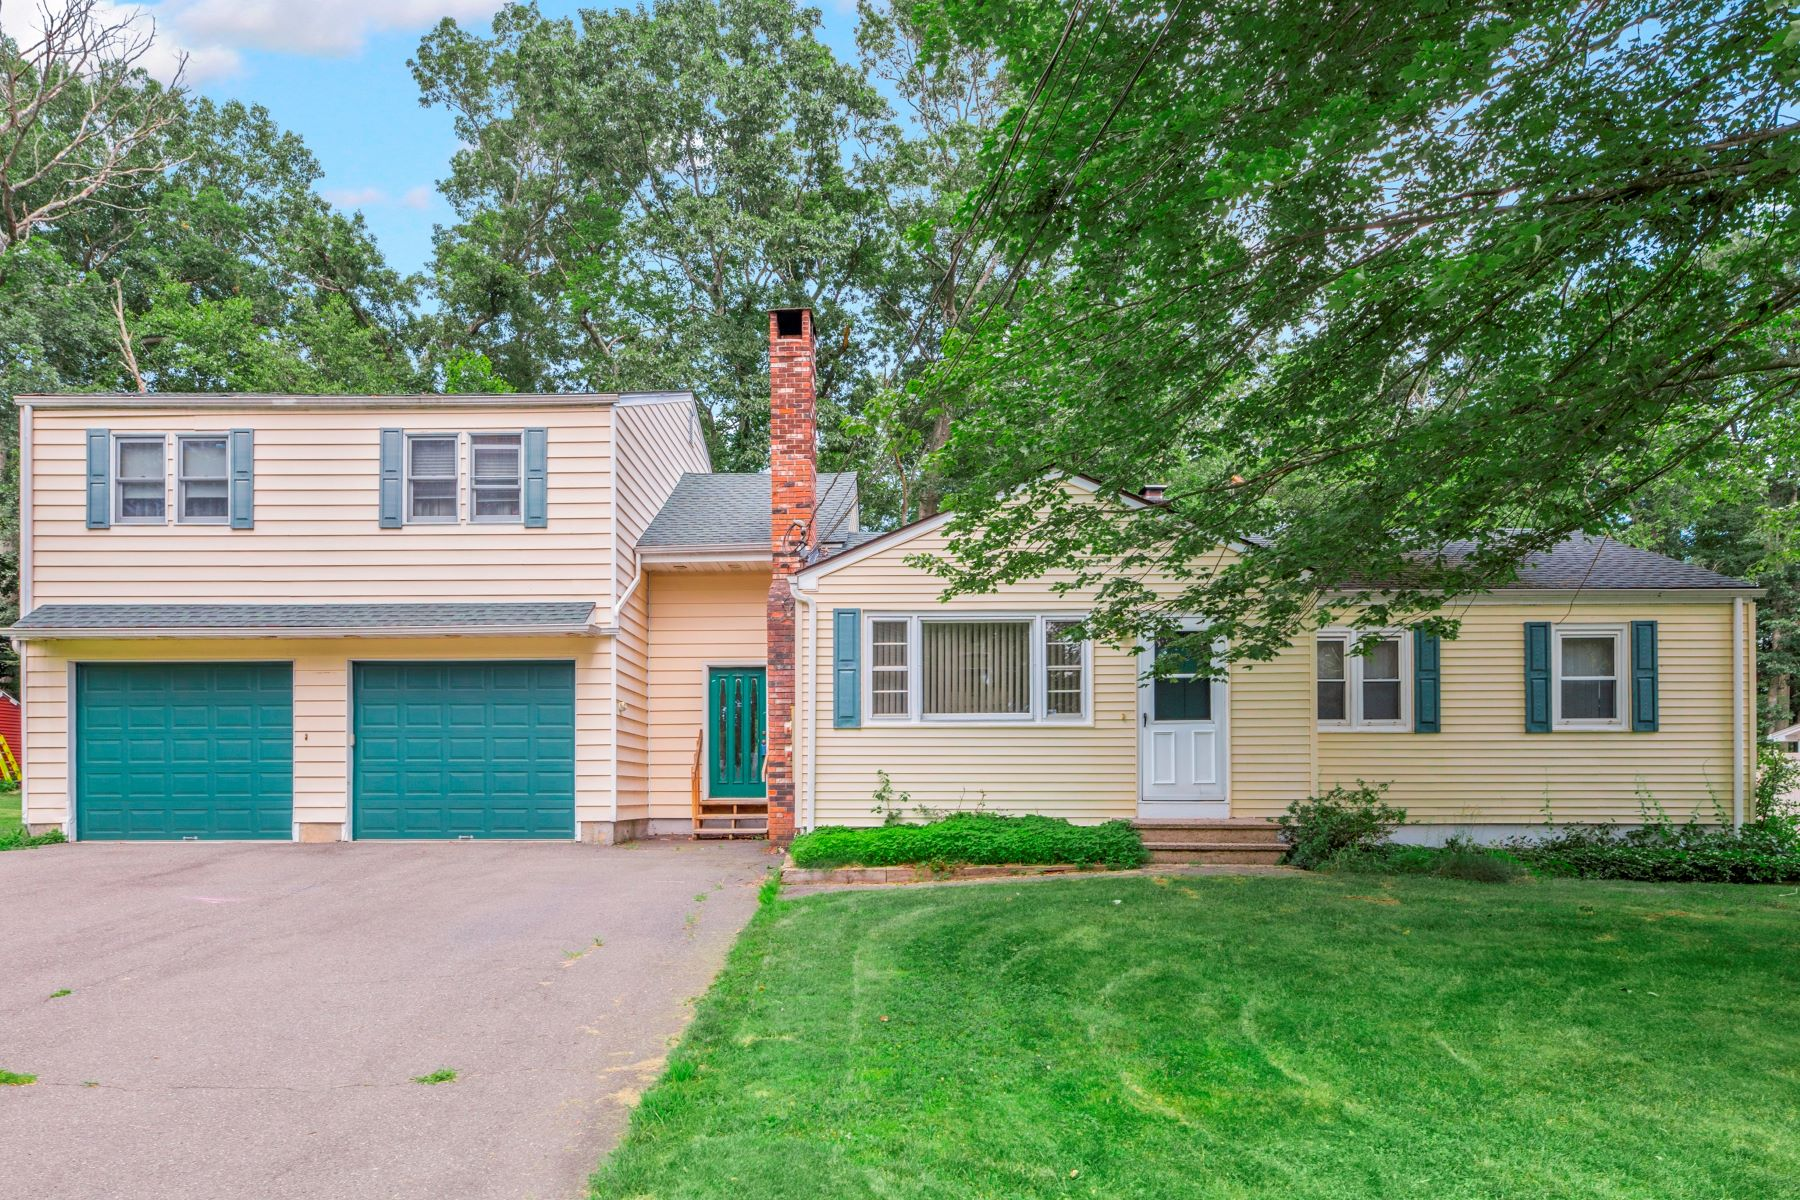 Single Family Homes for Sale at Ranch Home with In-Law Apartment 5 Walter Road Seymour, Connecticut 06483 United States